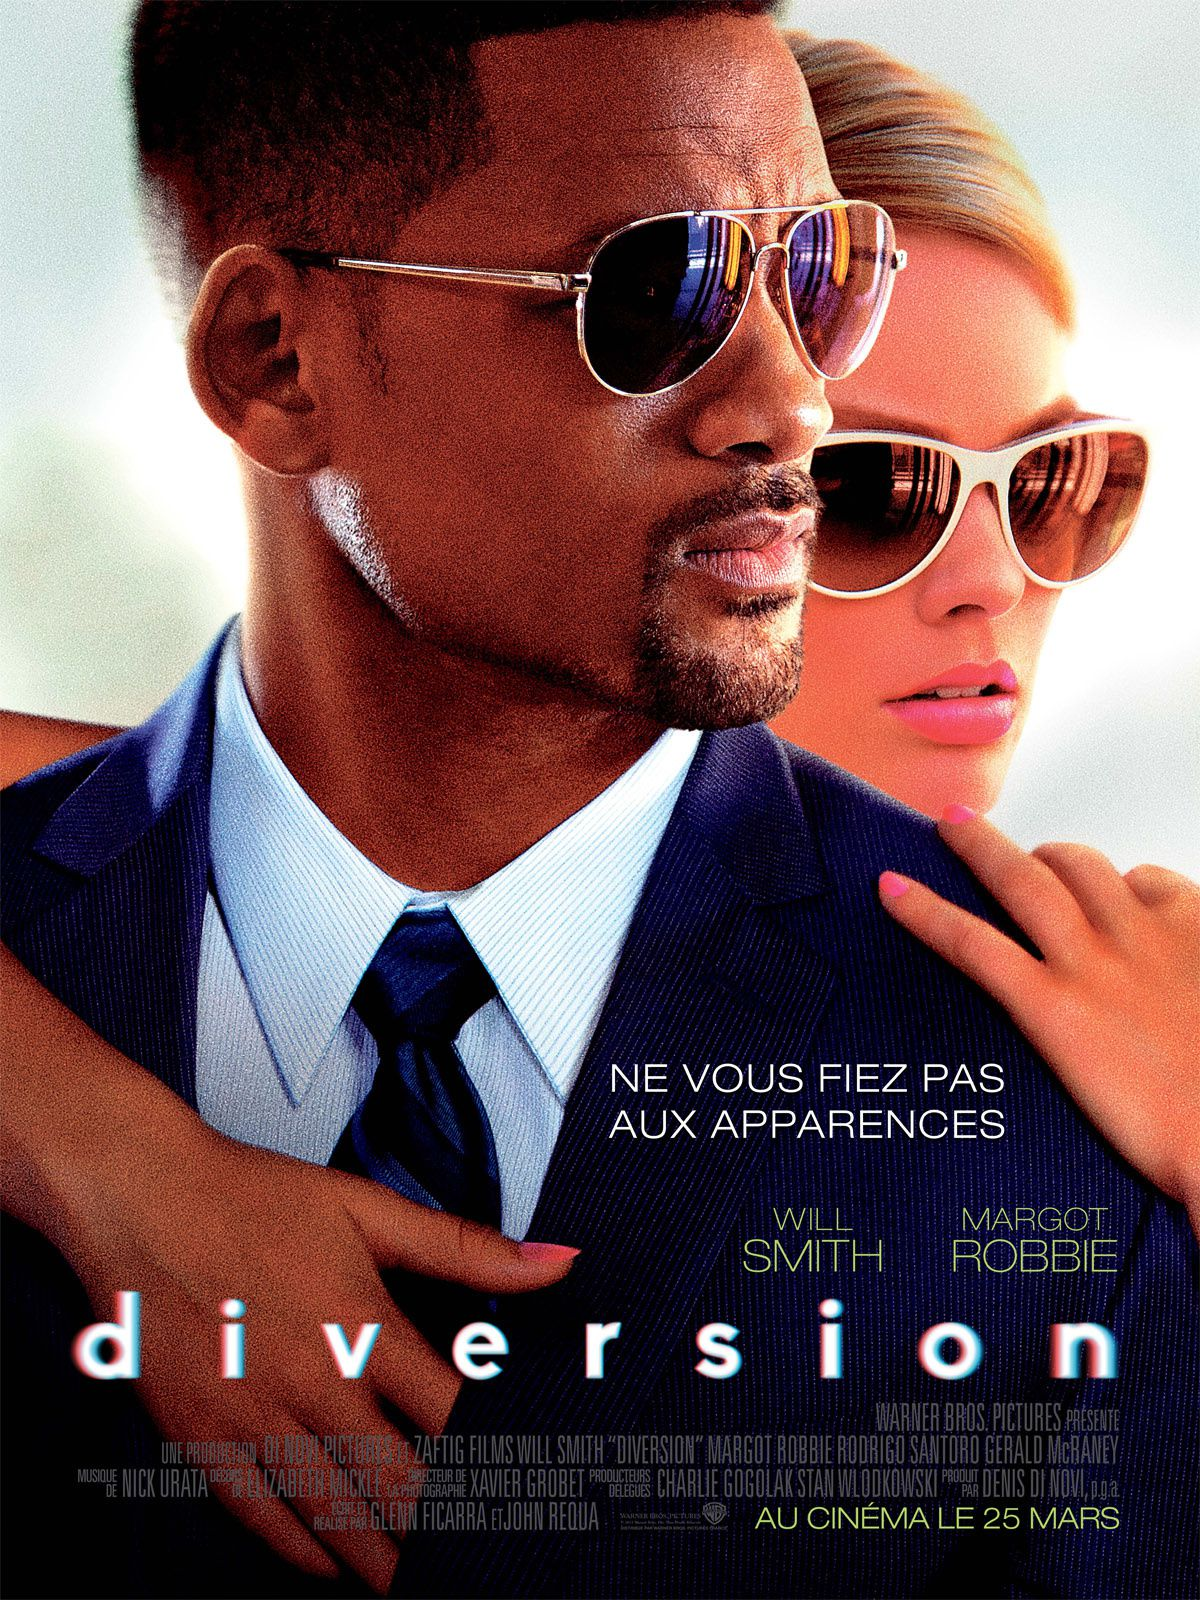 DIVERSION (Featurette VOST) avec Will Smith, Margot Robbie, Rodrigo Santoro - 25 03 2015 (Focus)